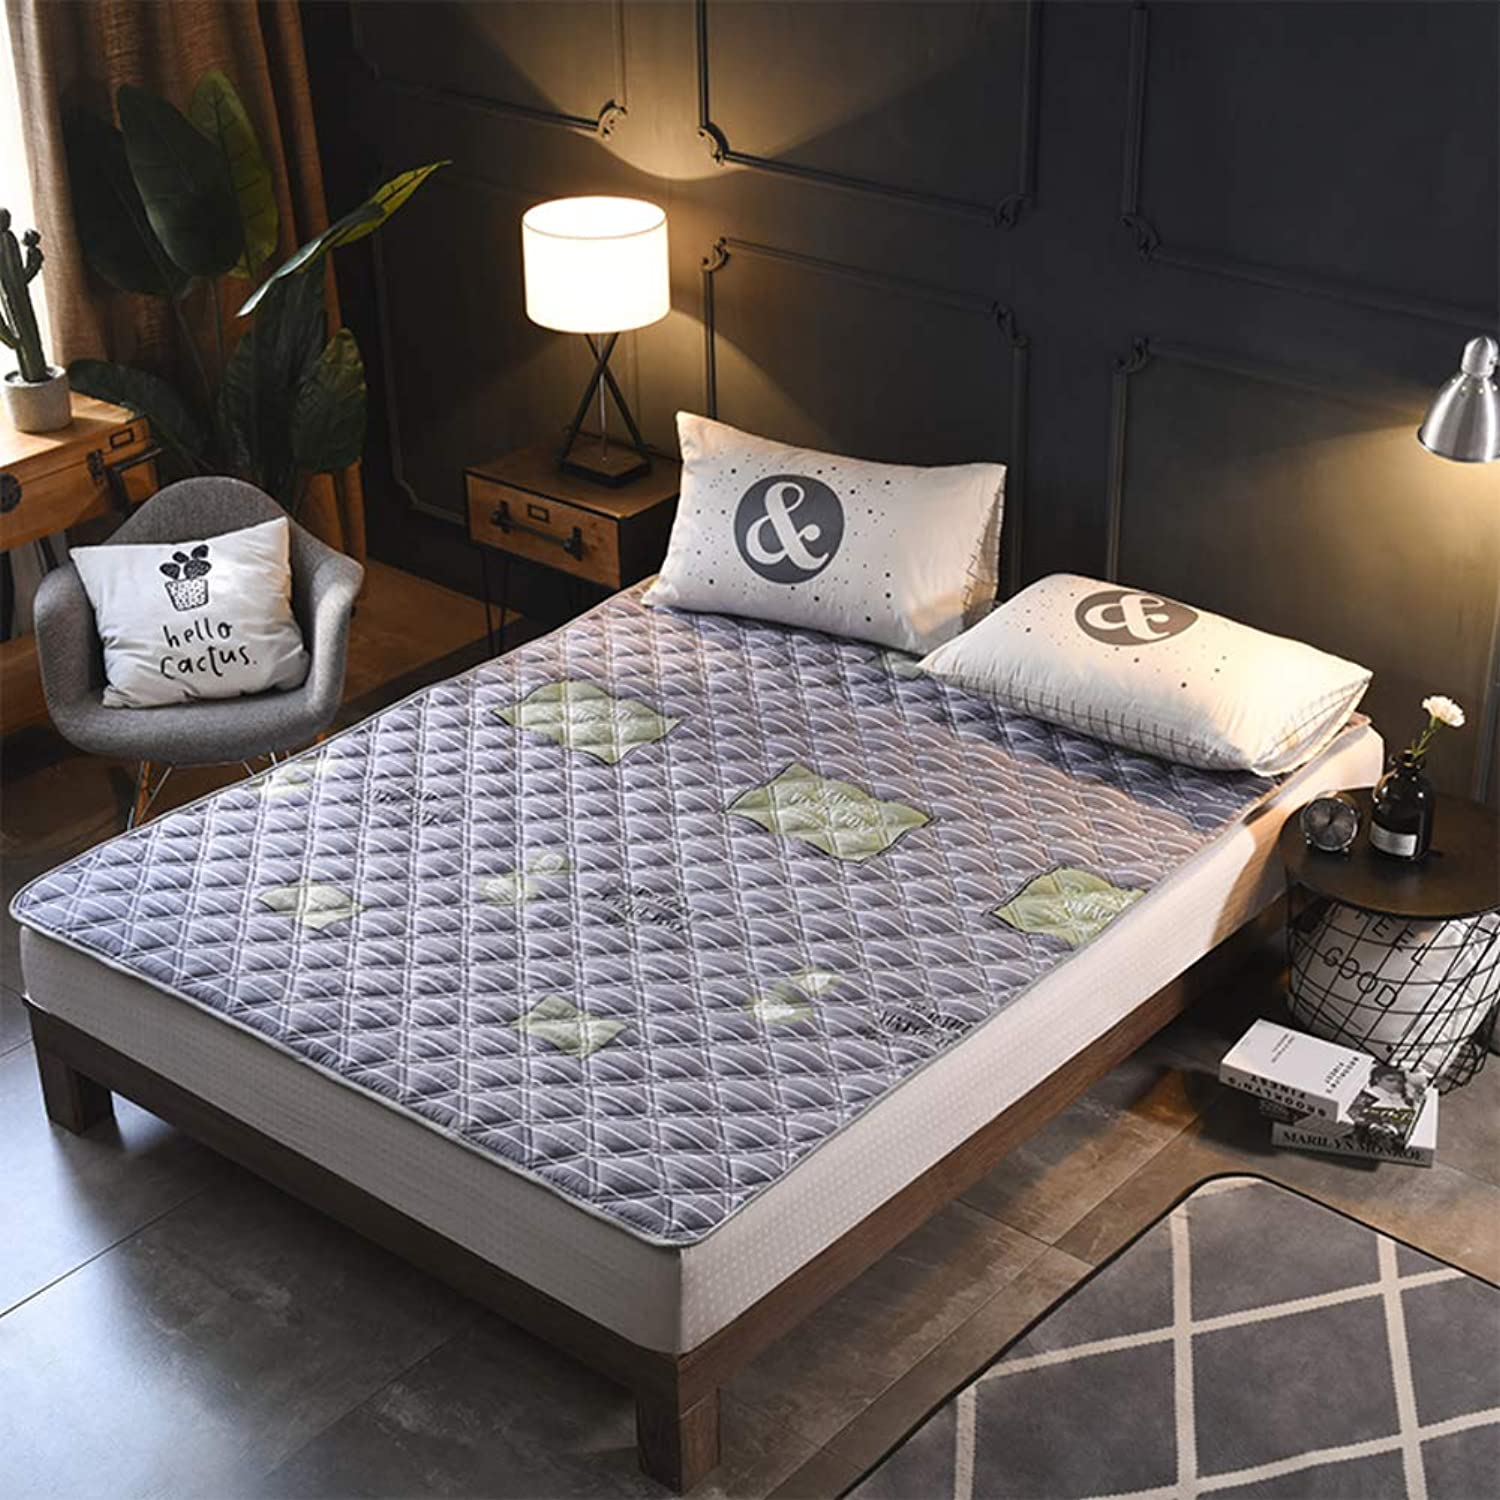 Foldable Mattress,Tatami Bed Mattress,Thin Washable Folding for Bedroom Living Room-B 135x200cm(53x79inch)